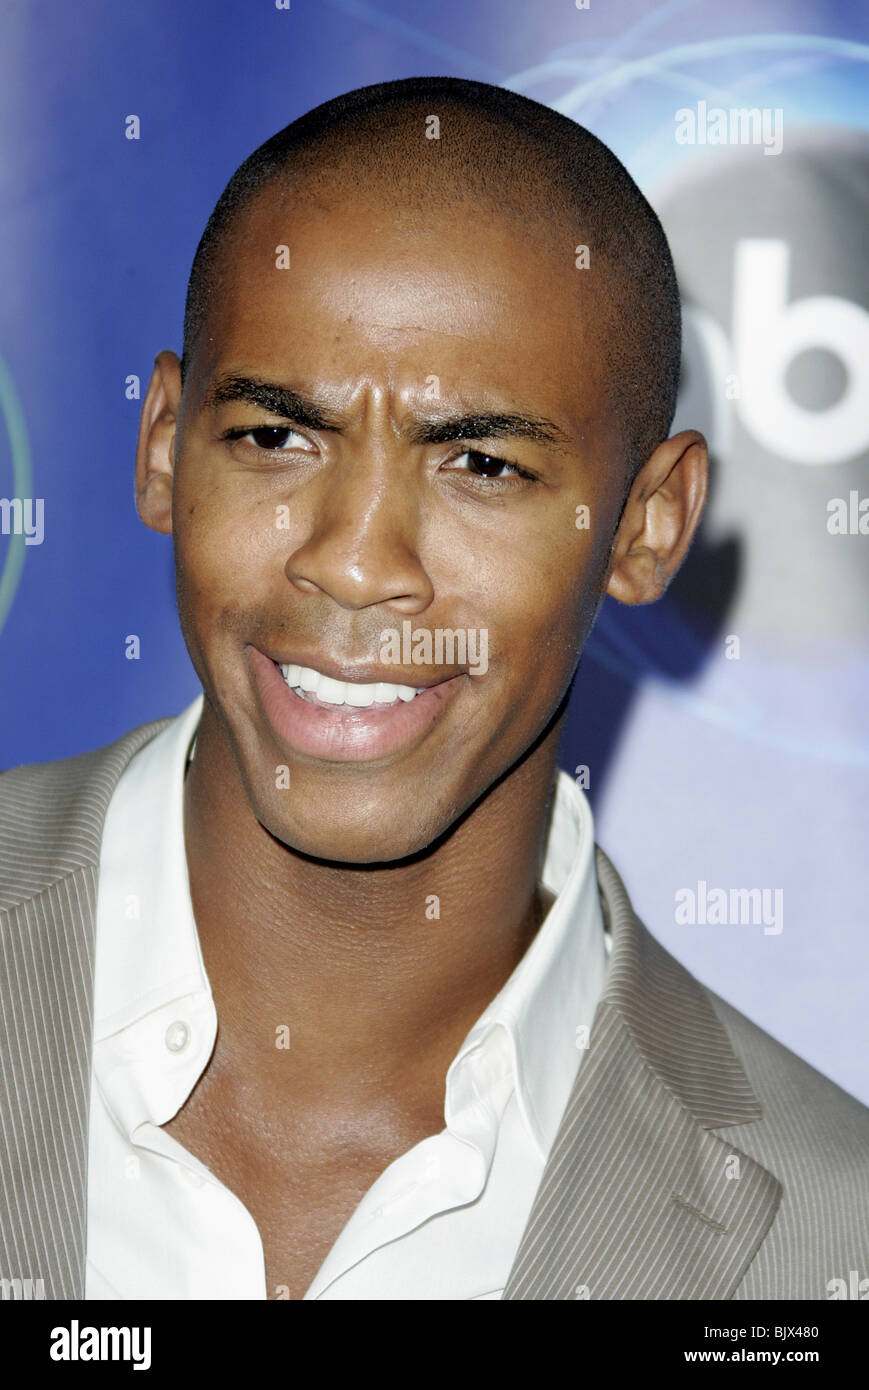 mehcad brooks stock photos & mehcad brooks stock images - alamy